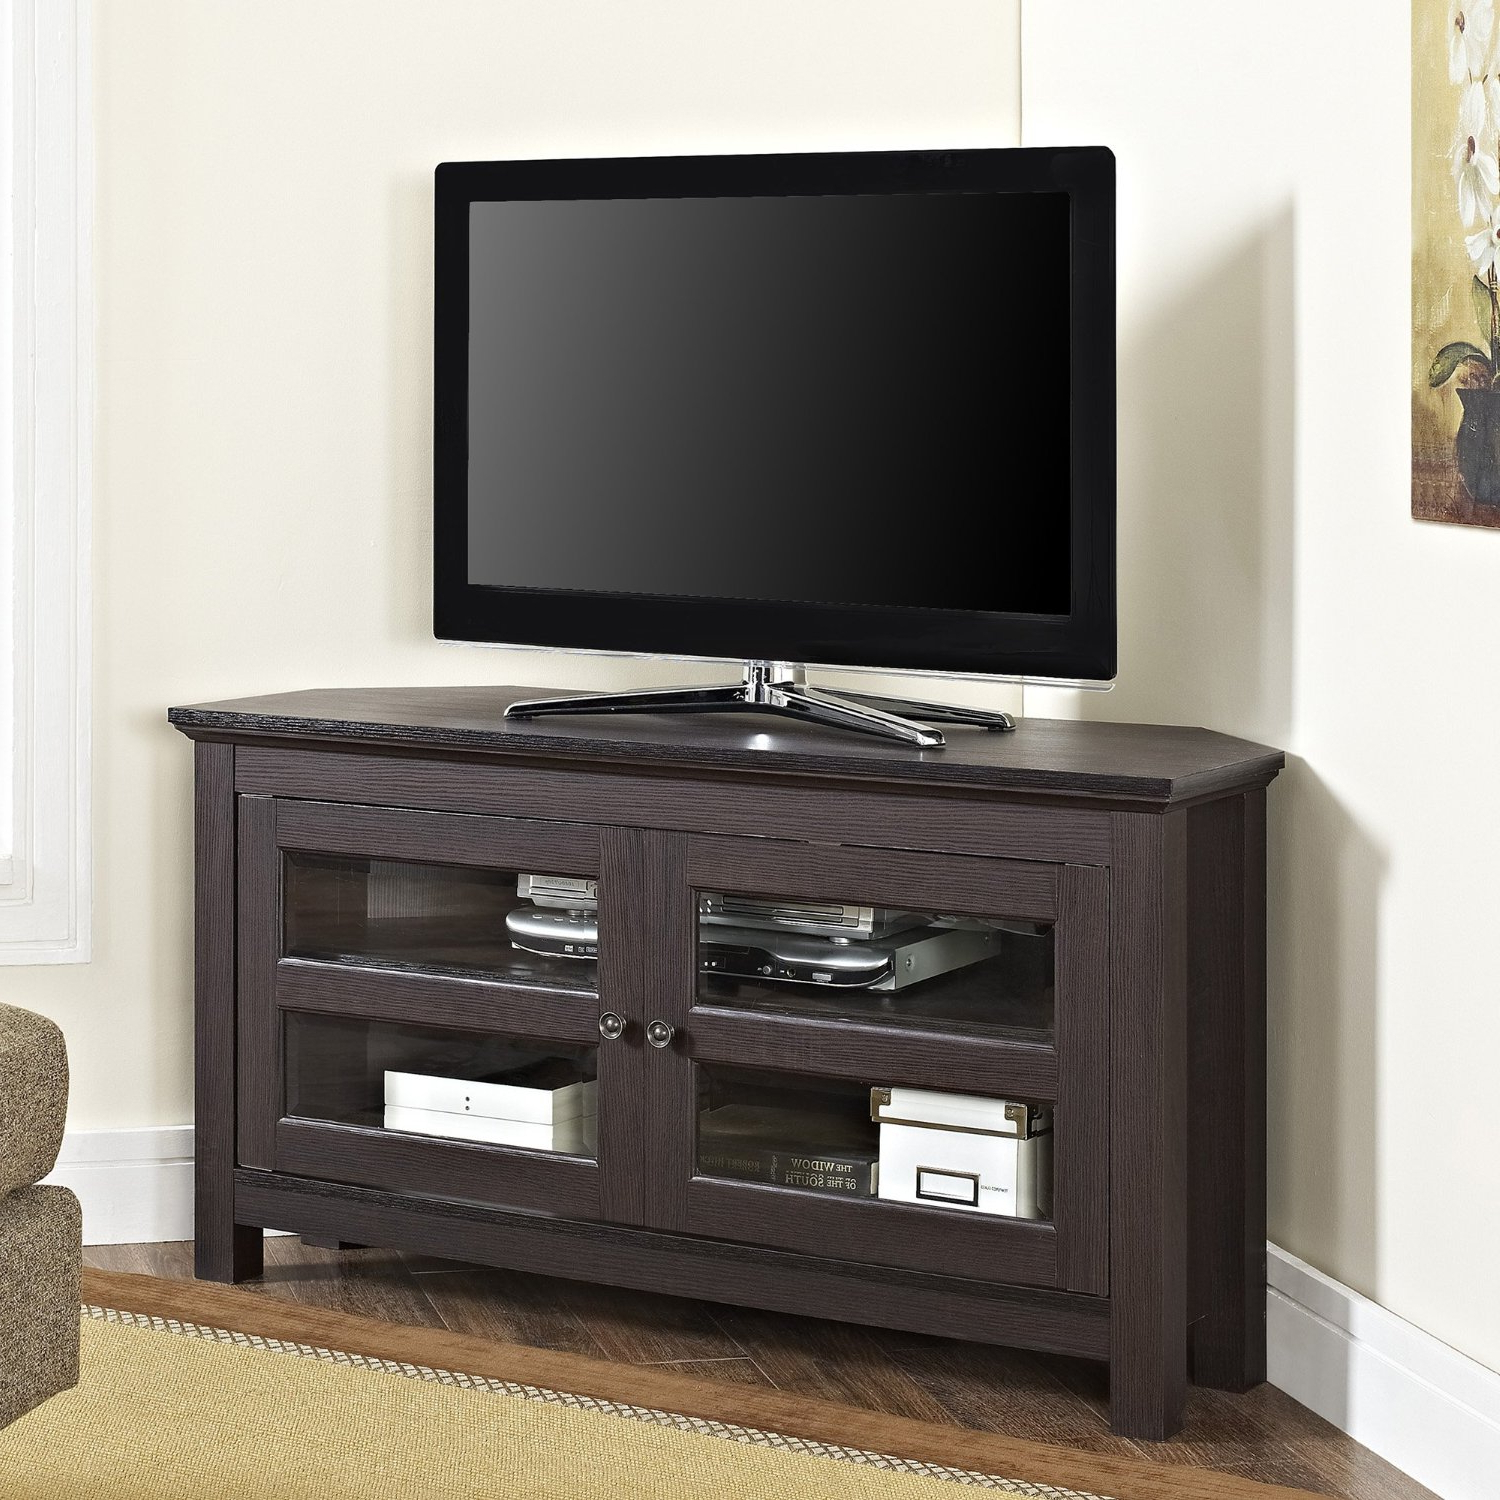 Favorite 50 Inch Corner Tv Cabinets Within Oak Corner Tv Stand For 50 Inch Walmart Cabinet 60 Hooker Black (View 11 of 20)